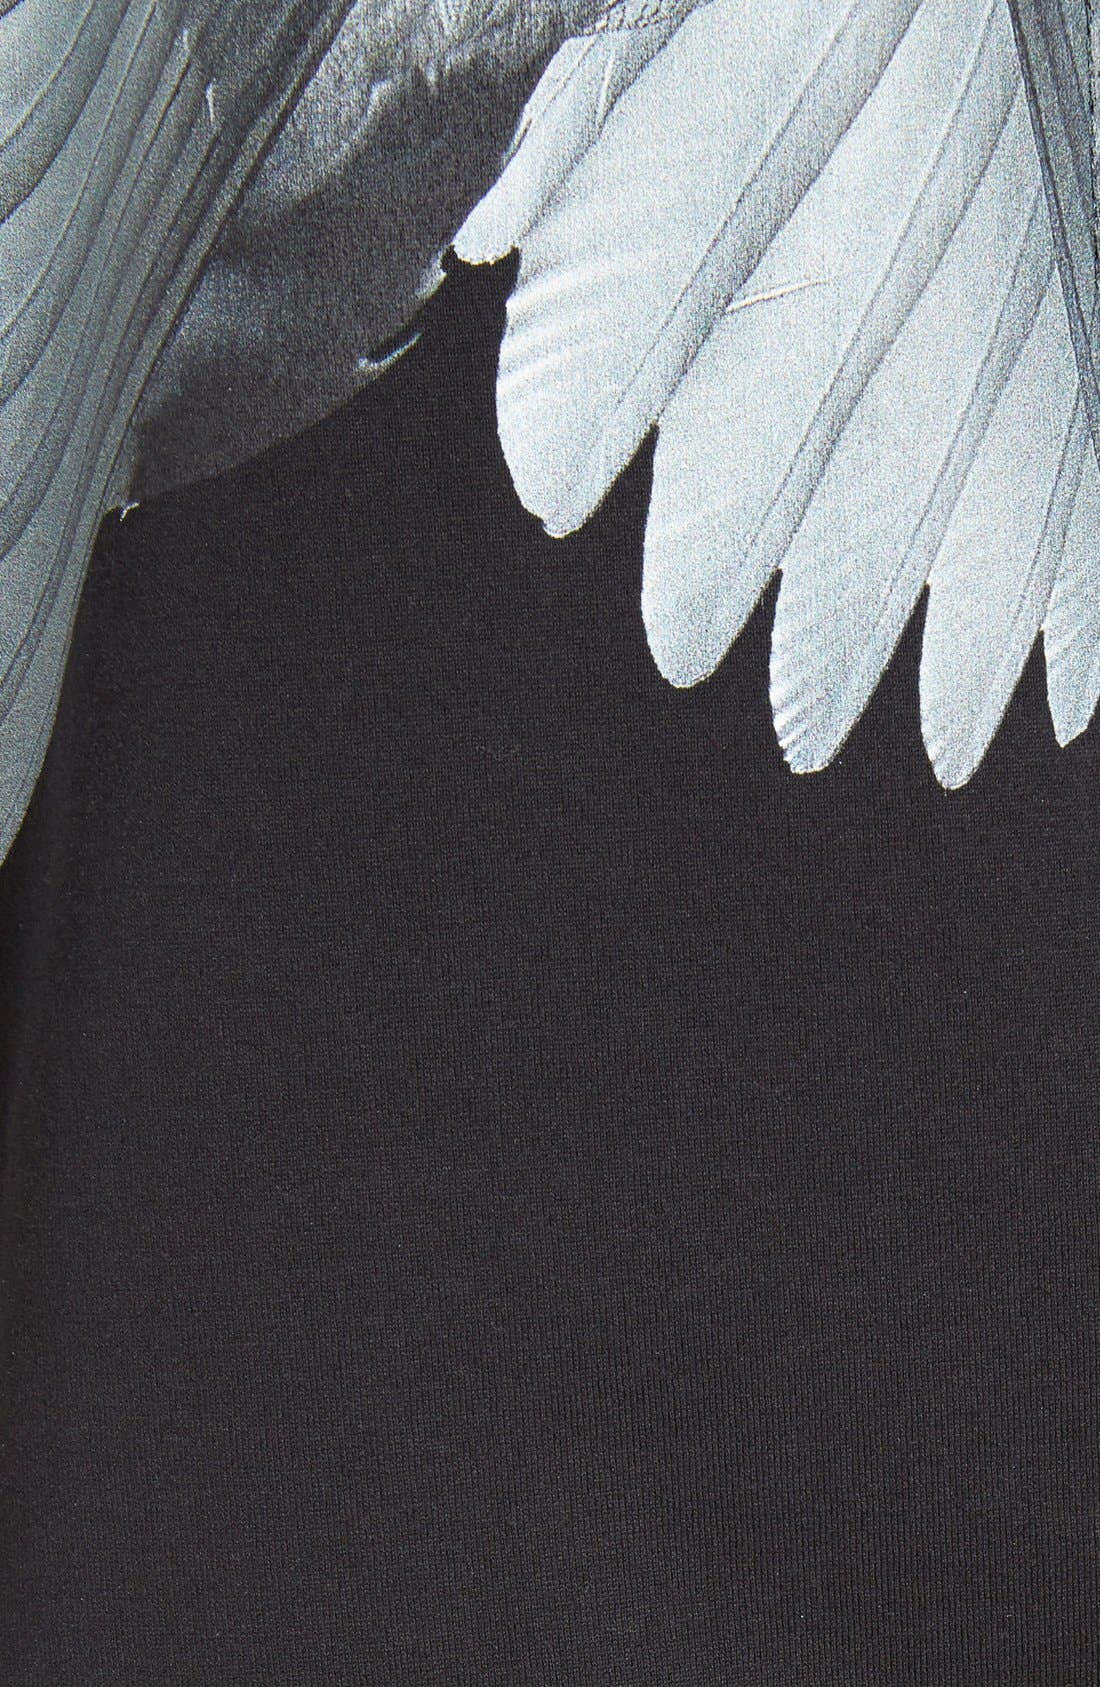 Alternate Image 3  - Givenchy 'Wing' Cotton Tee